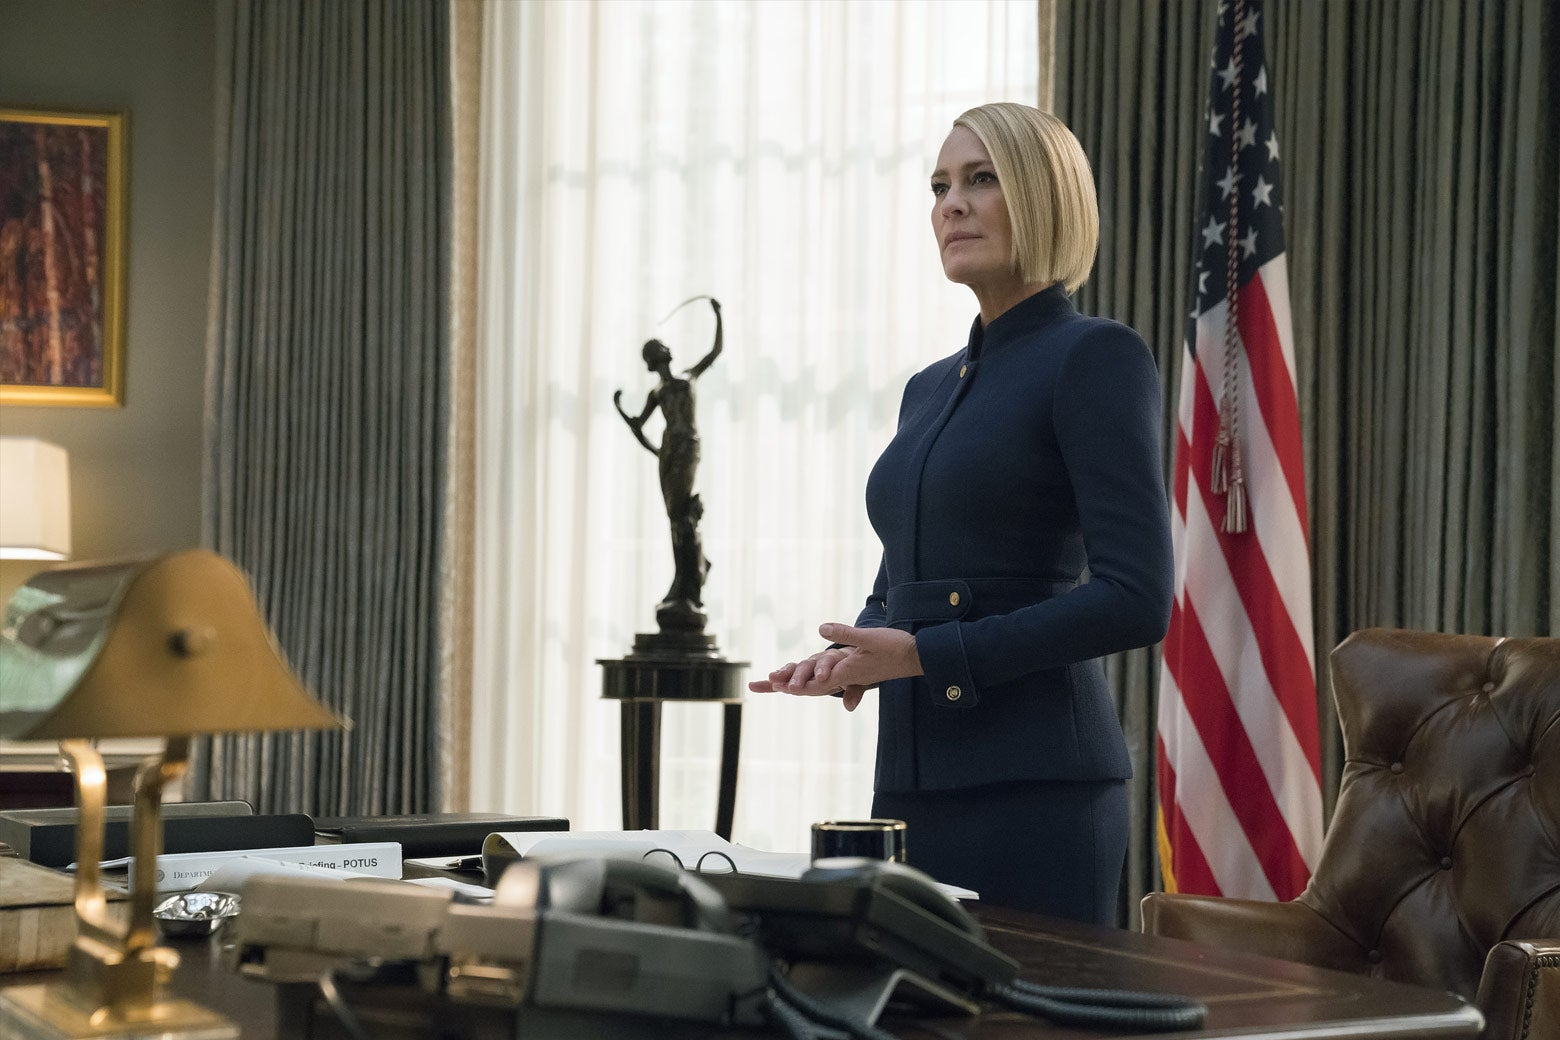 Robin Wright as Claire Underwood, standing in the Oval Office.